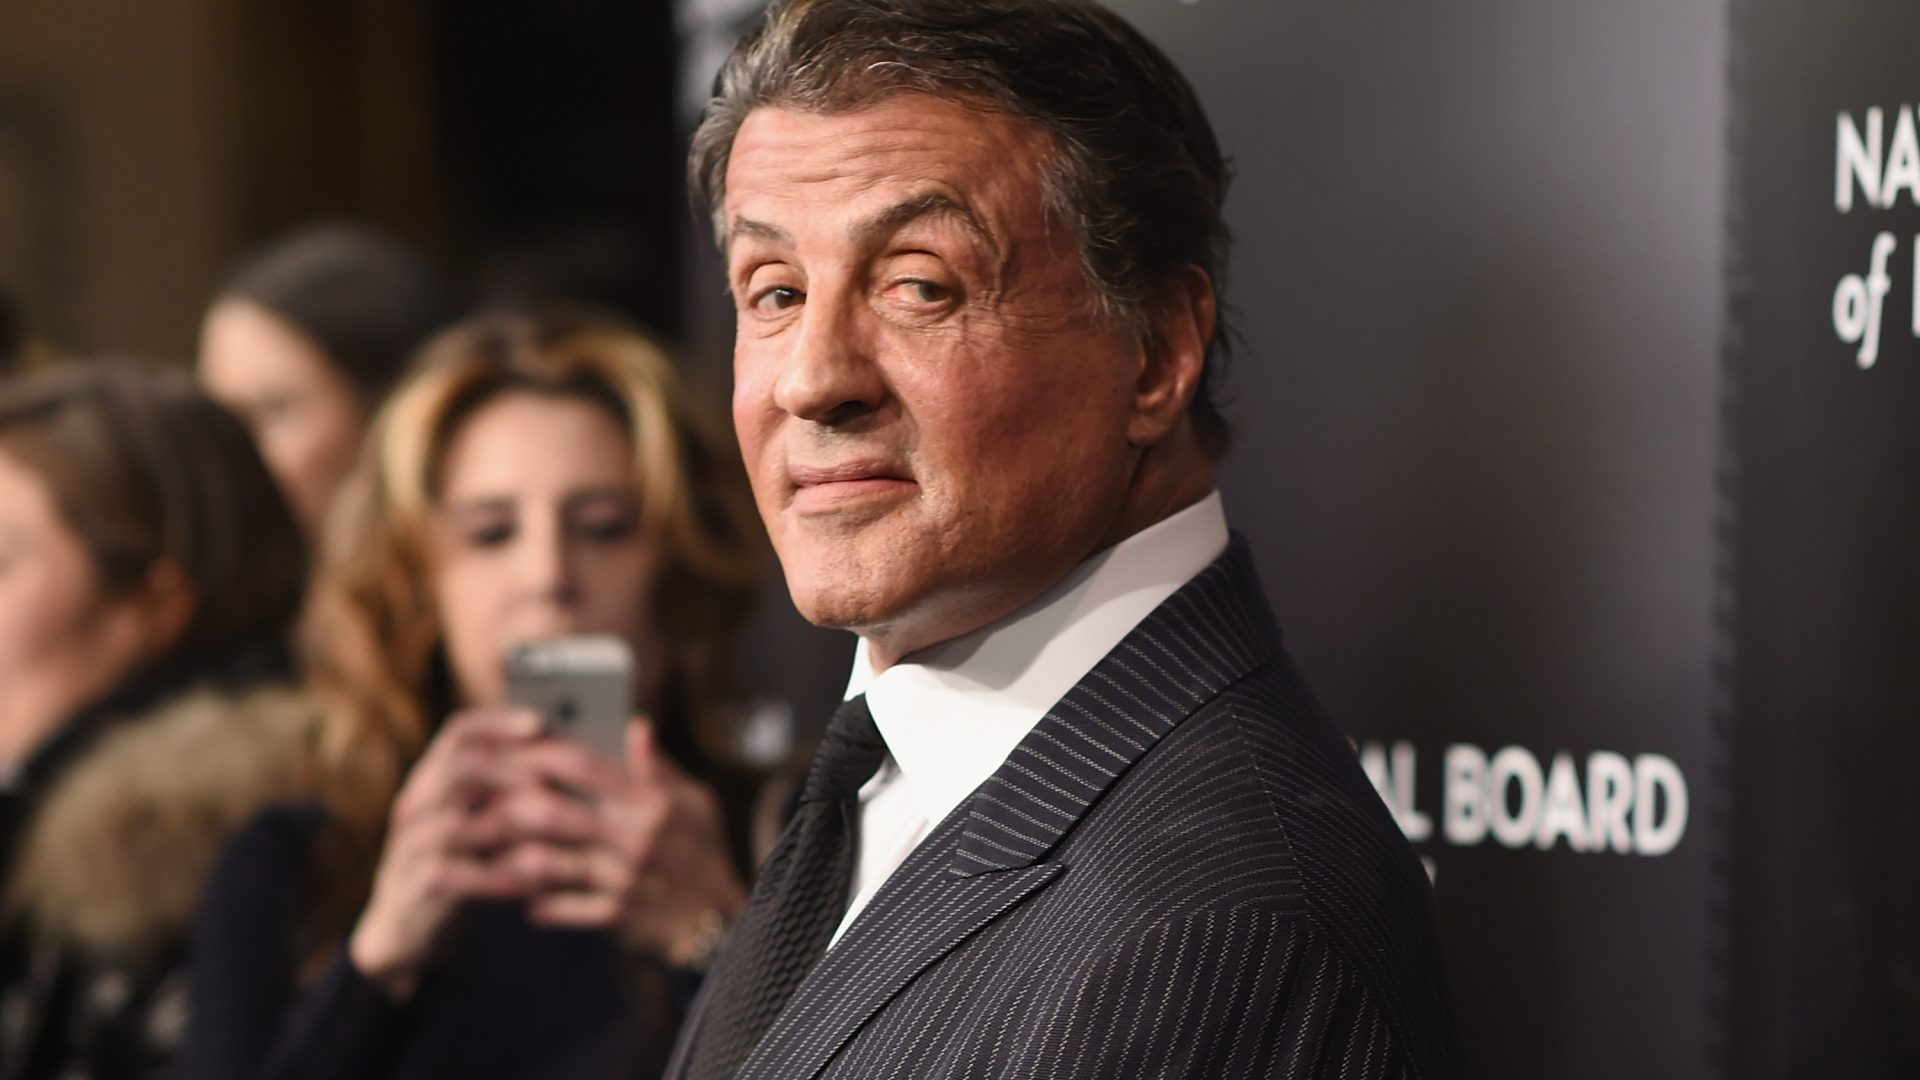 NEW YORK, NY - JANUARY 05: Actor Sylvester Stallone attends the 2015 National Board of Review Gala at Cipriani 42nd Street on January 5, 2016 in New York City. (Photo by Dimitrios Kambouris/Getty Images)